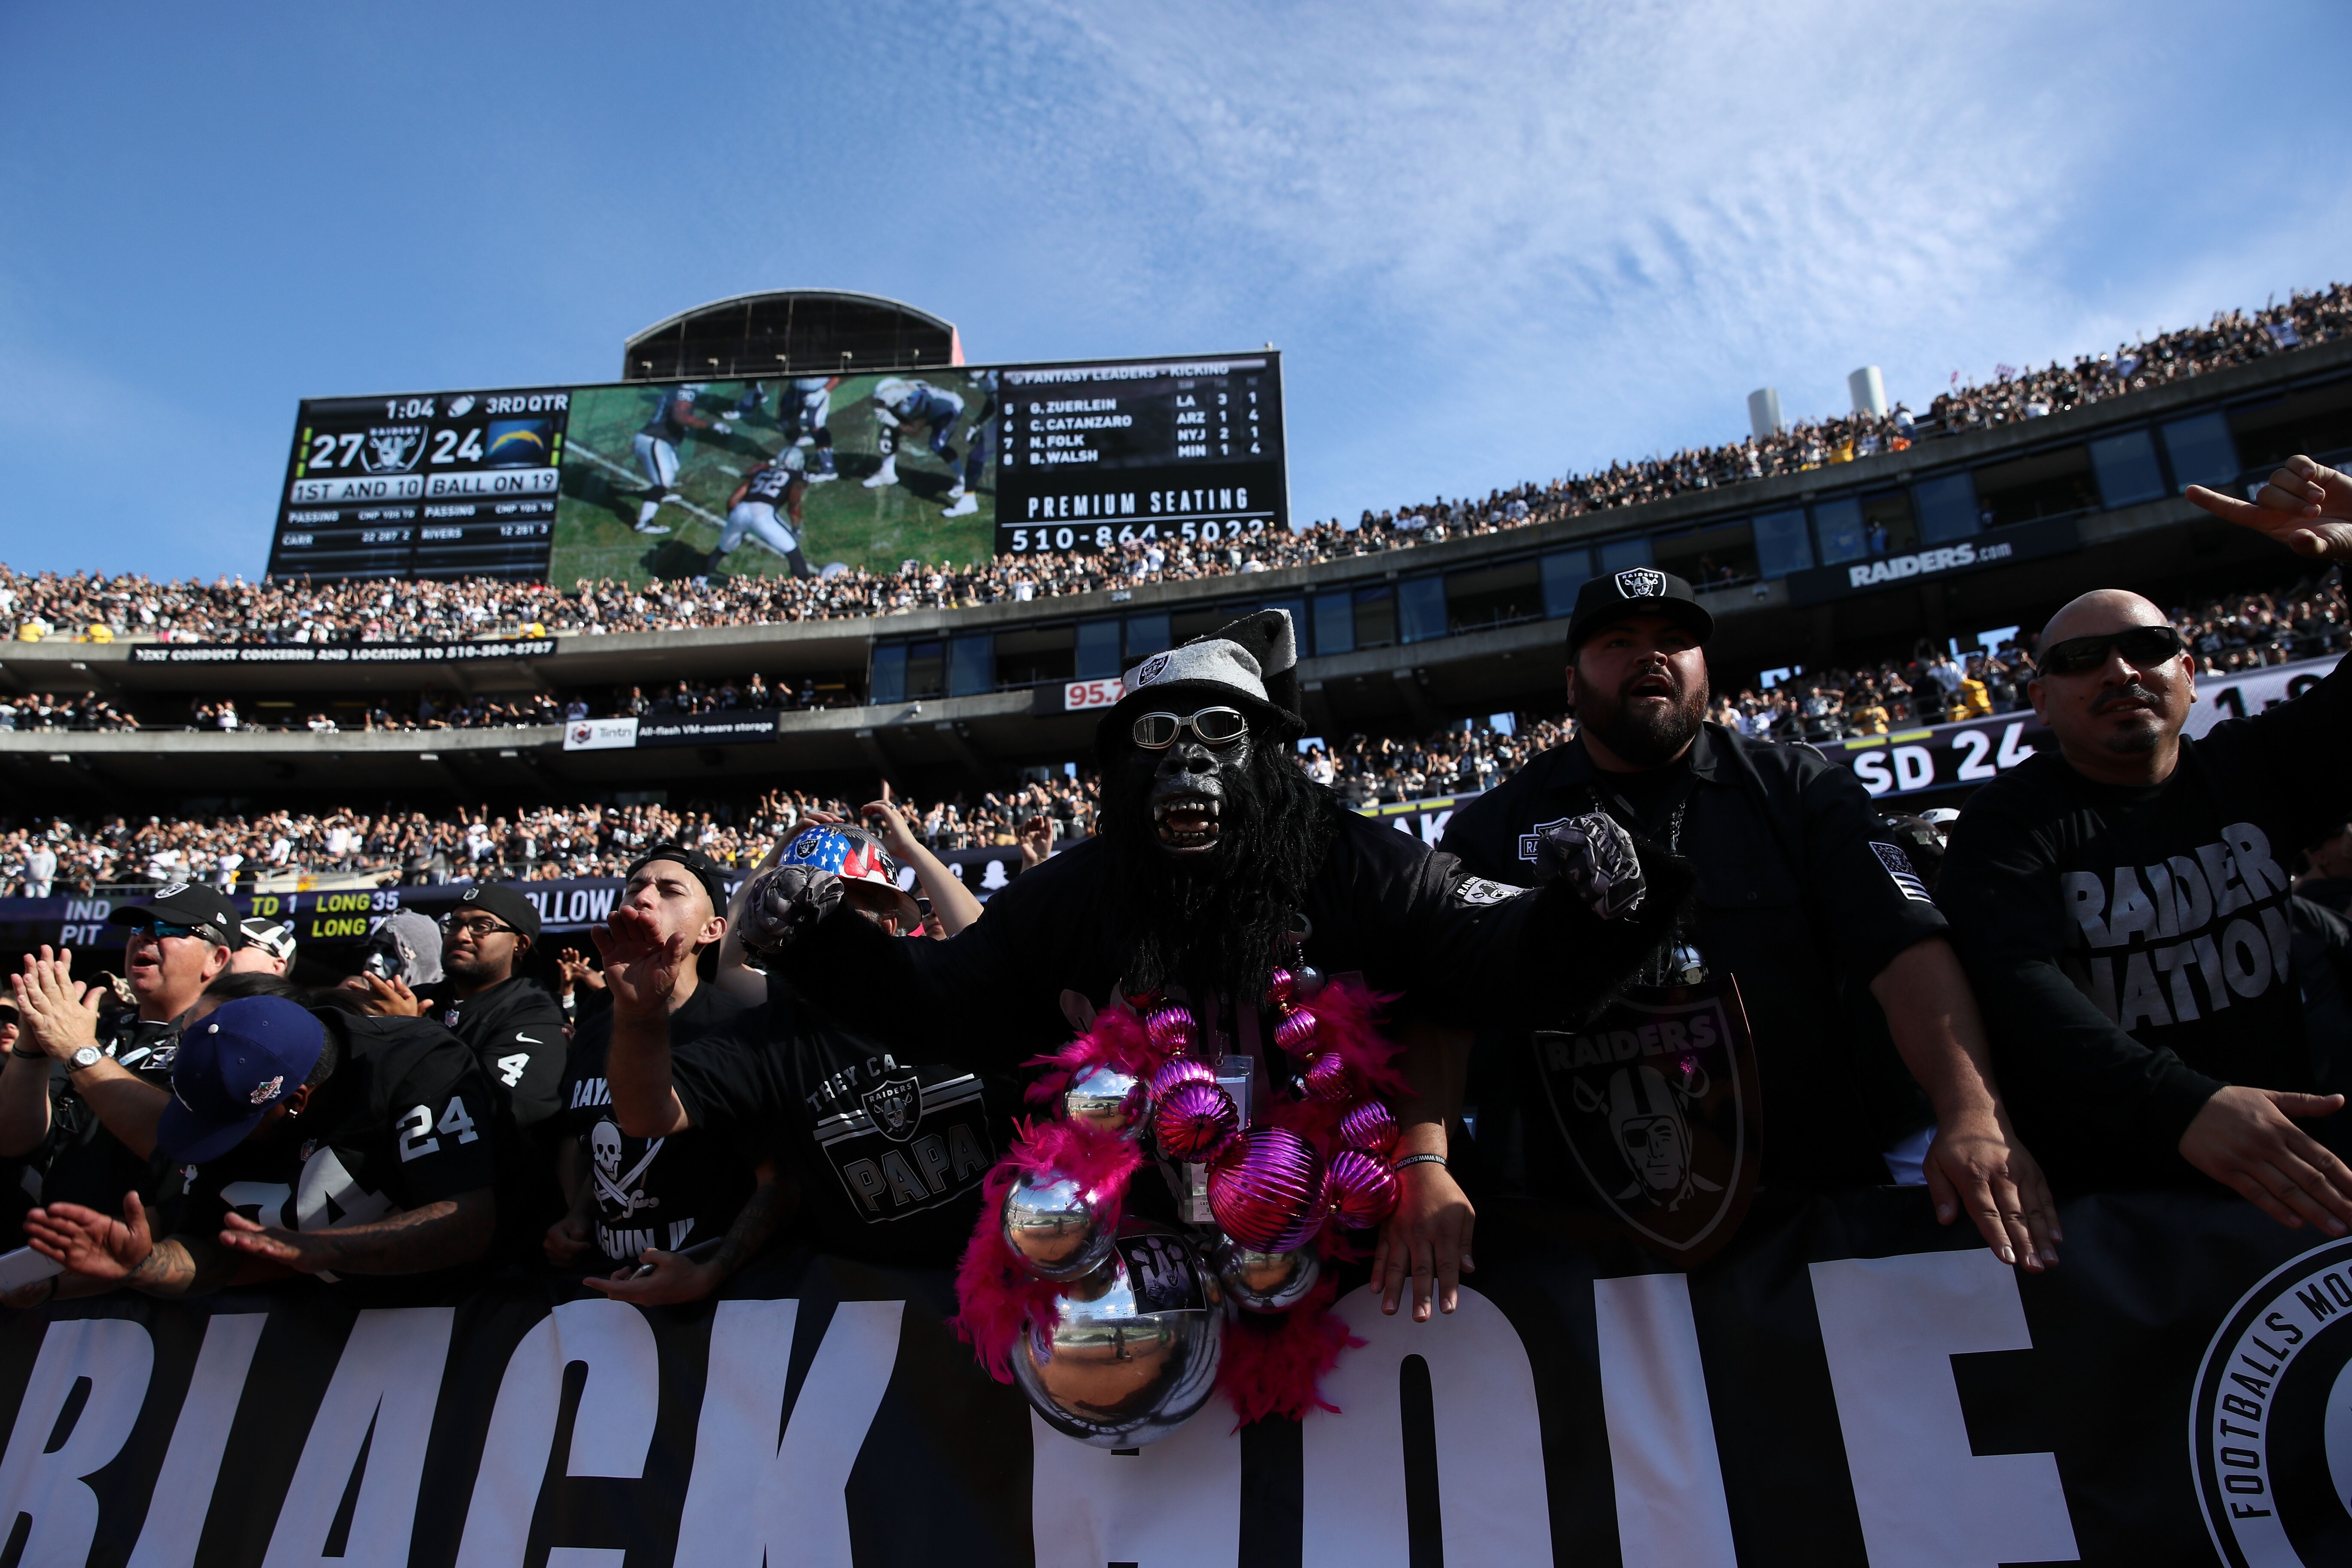 Oakland Raiders Jobbed Worse Than Snow Game In Fandom 250